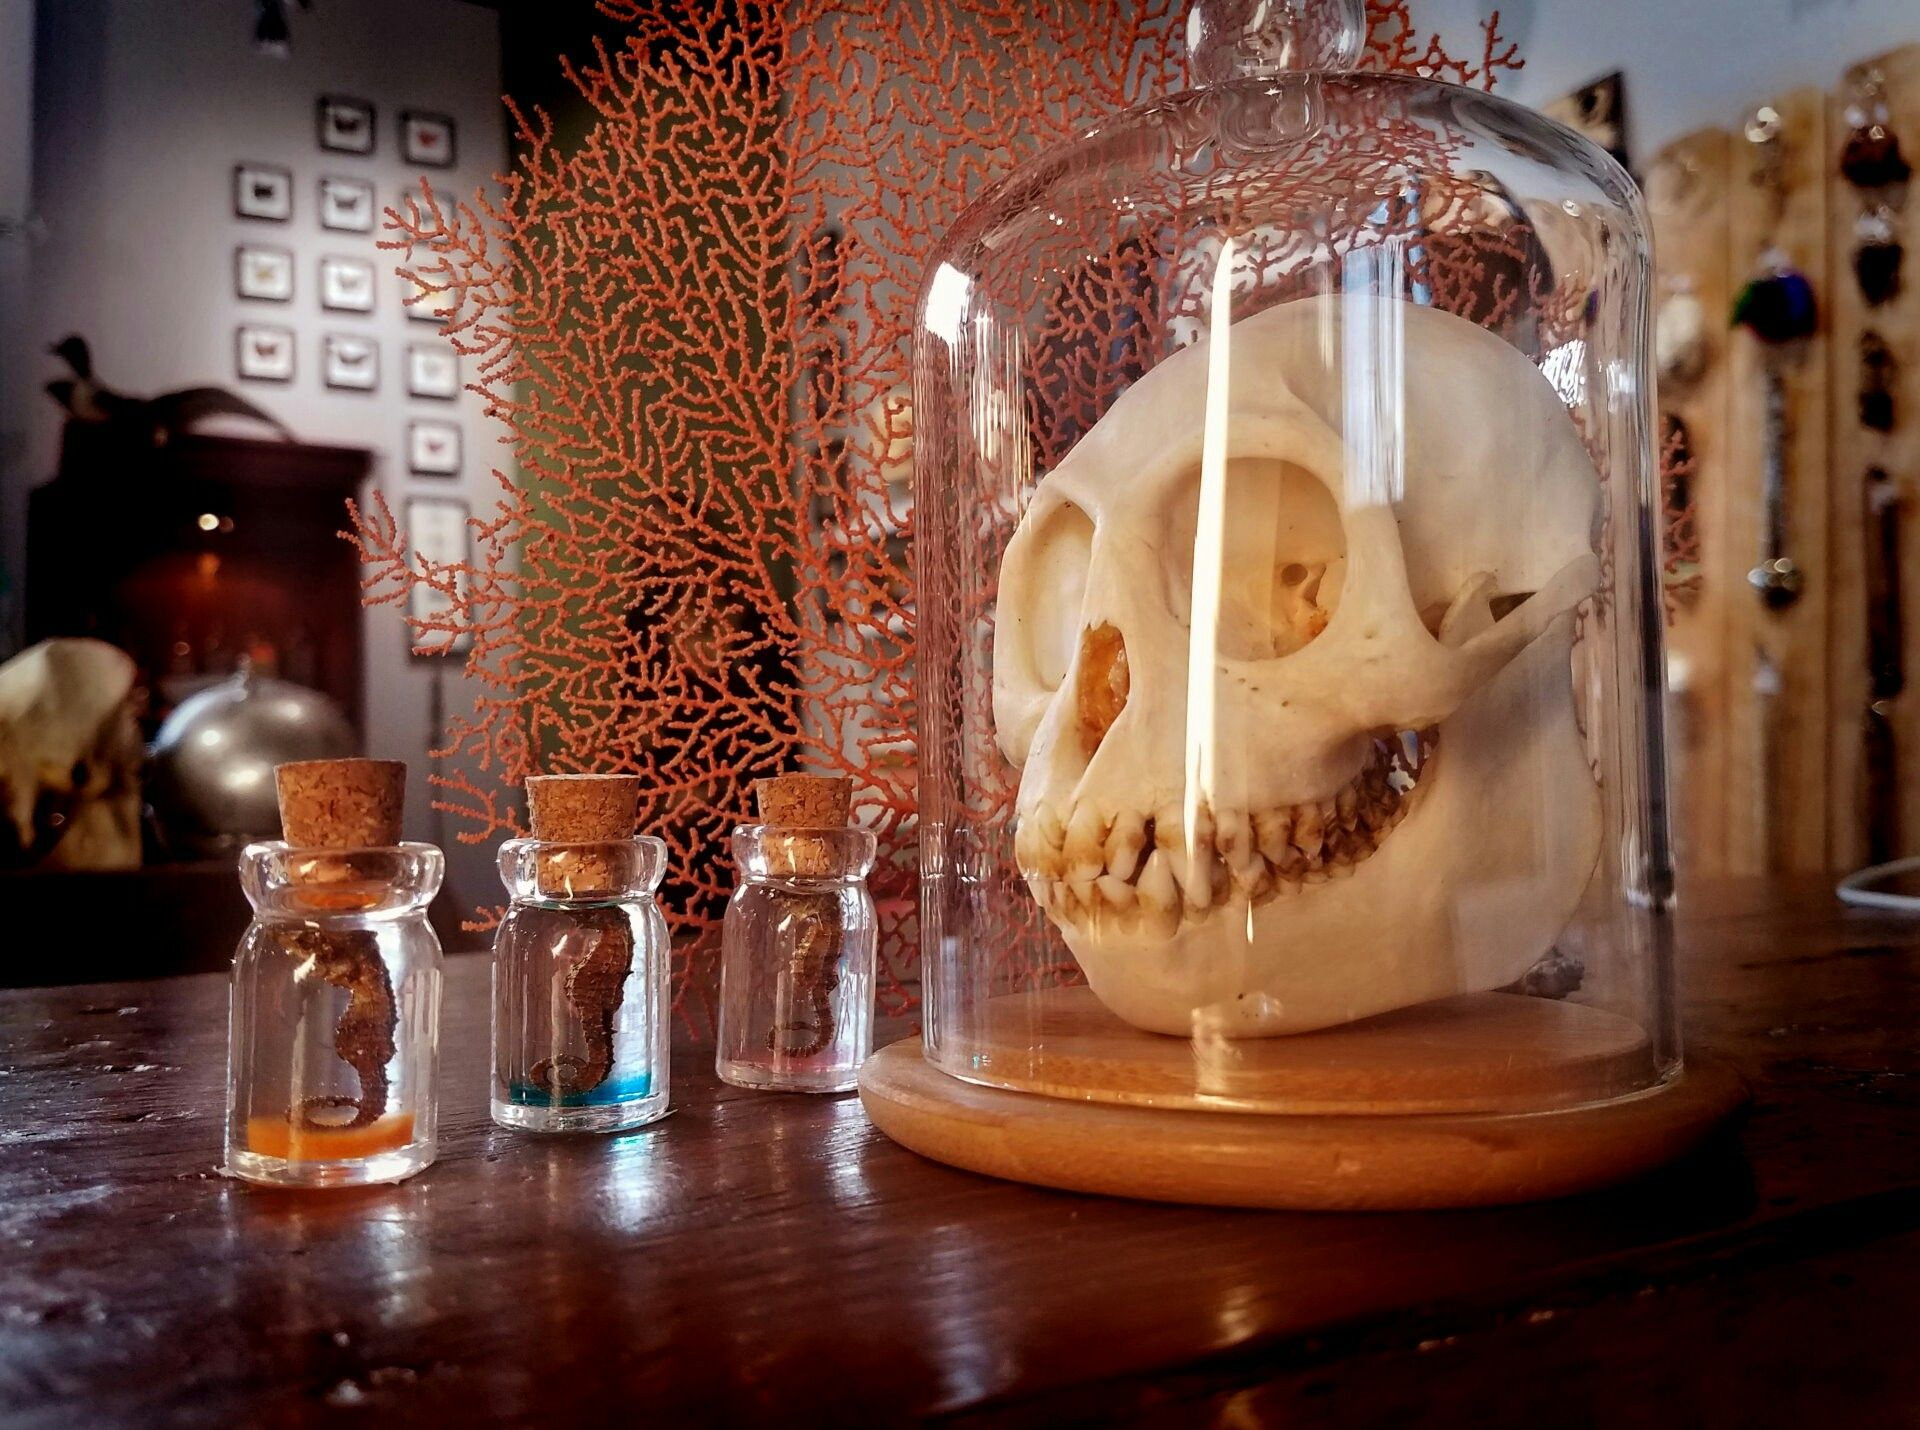 Escape Rooms Haunted houses near me, Real haunted houses